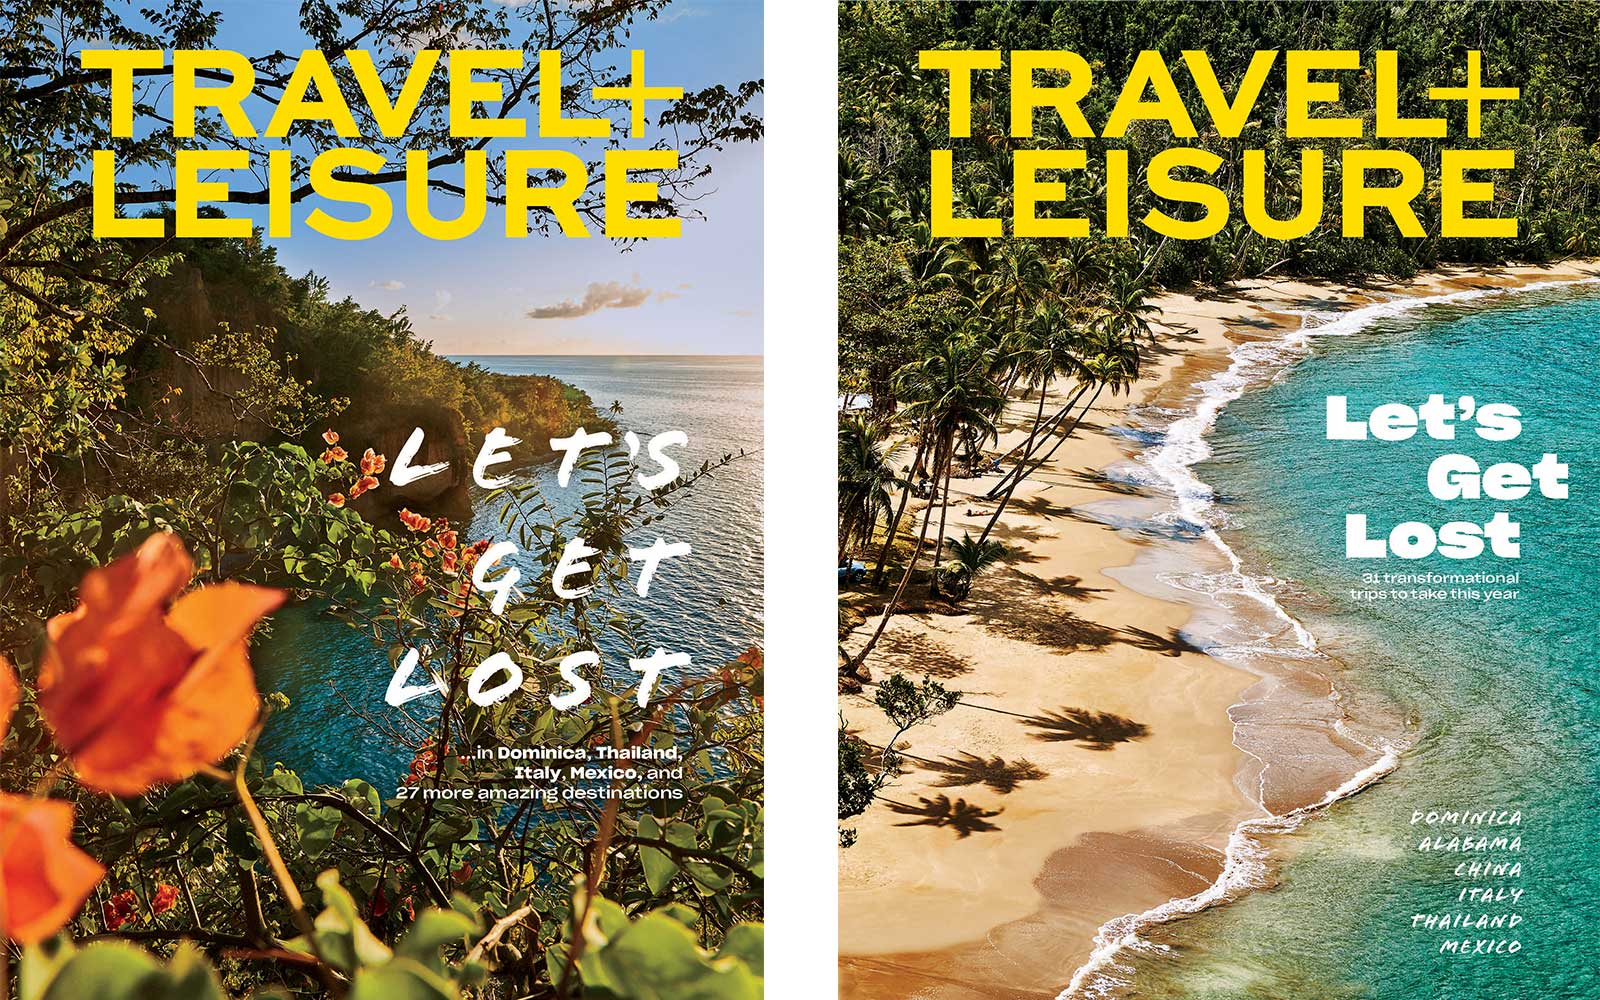 Noe DeWitt, The Photographer Behind T+L's April 2019 Covers, Reveals How He Got the Shot